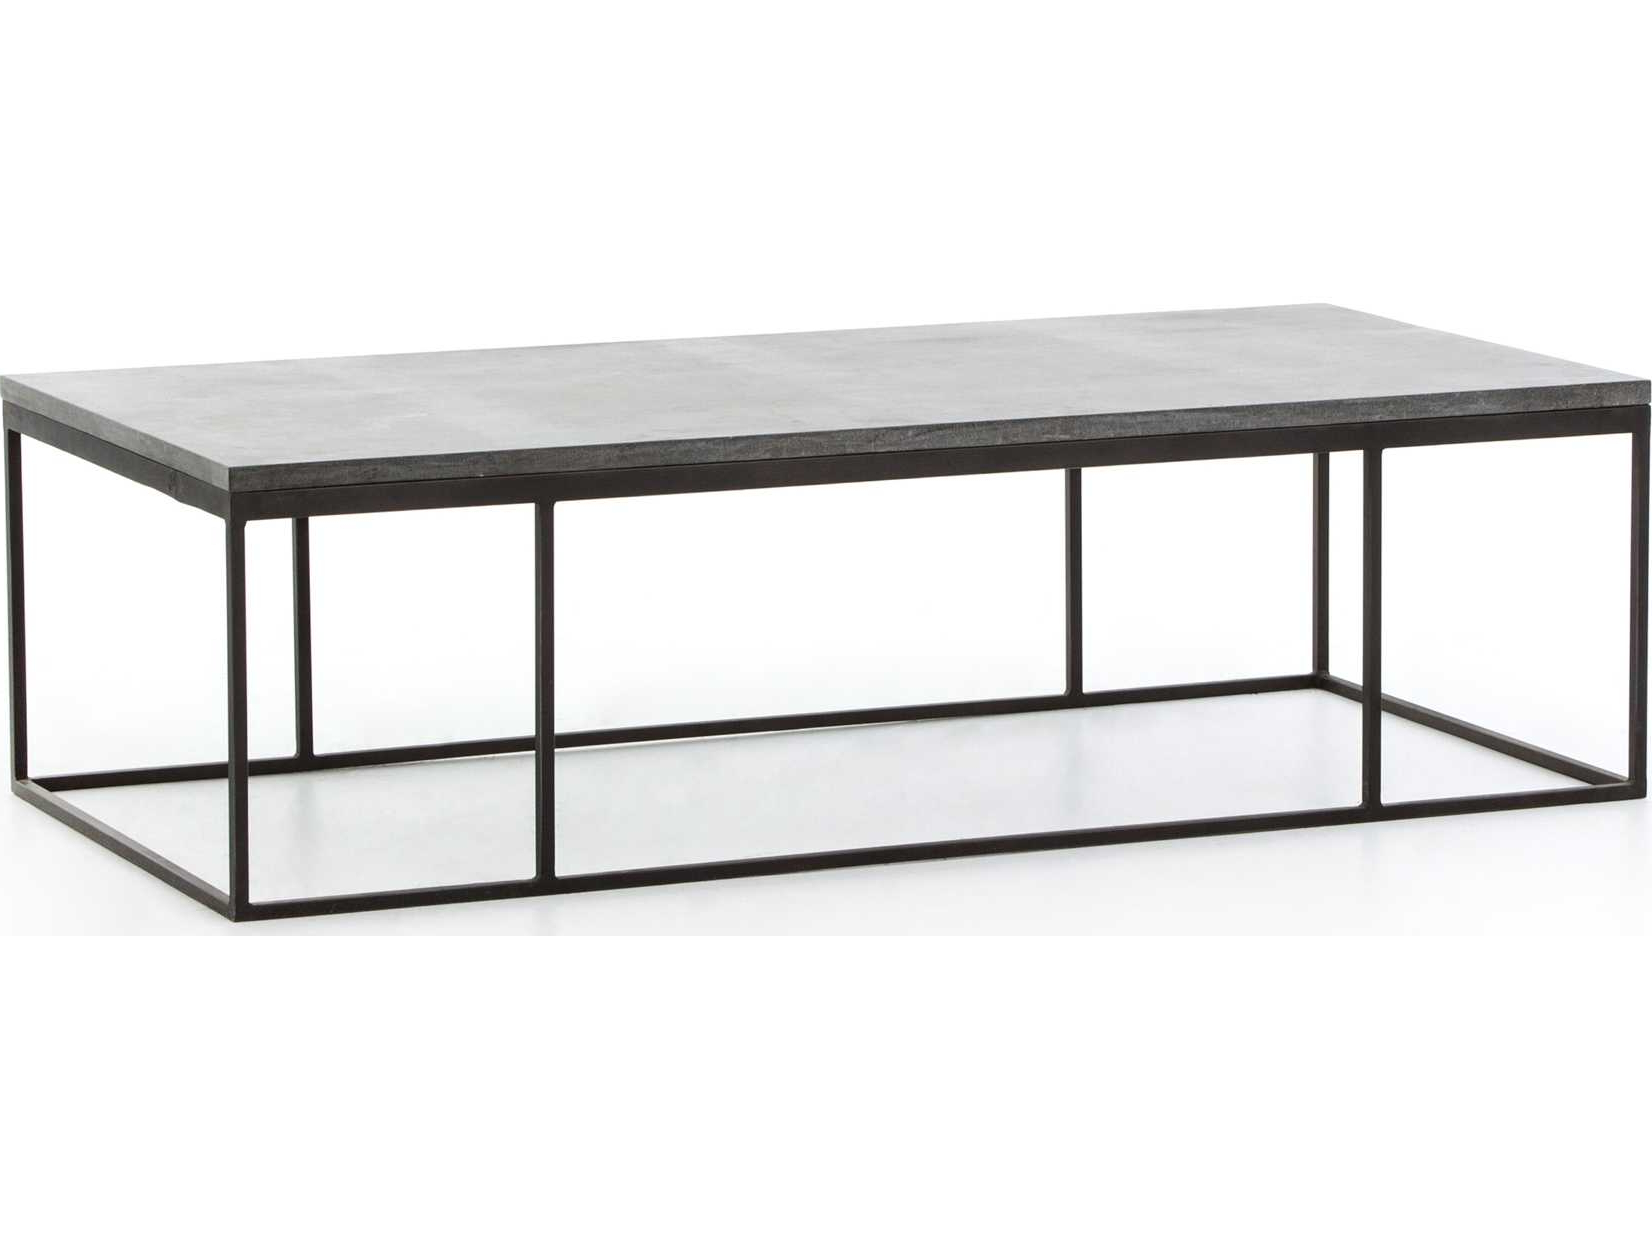 Bluestone Rustic Black Coffee Tables Within Favorite Four Hands Hughes Bluestone 60 X 28 Rectangular Harlow Small Coffee (View 4 of 20)